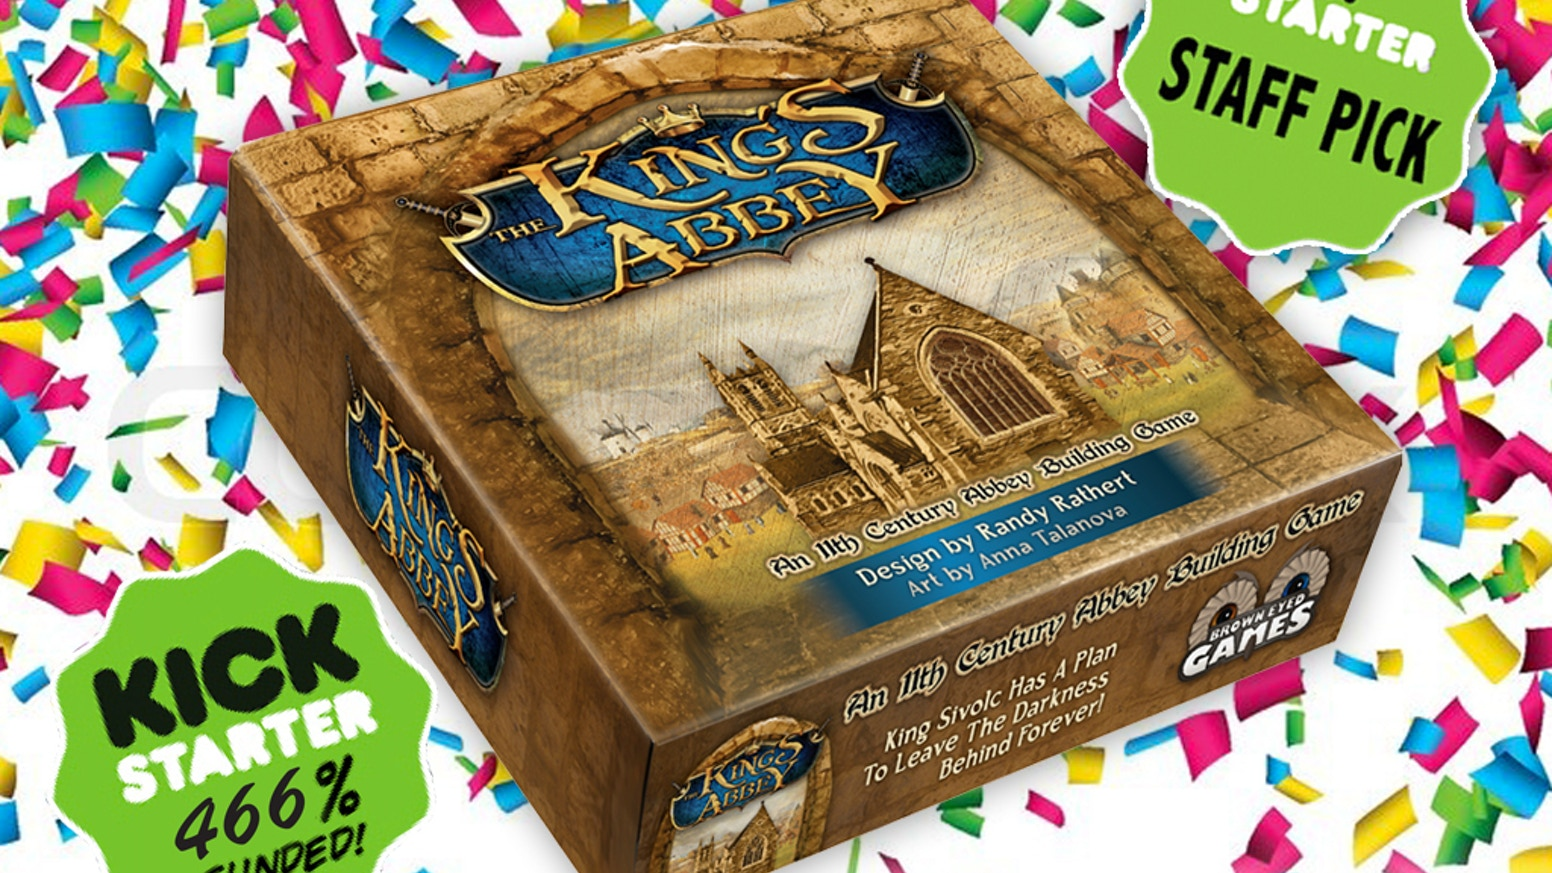 You can order at http://breakinggames.com/products/the-kings-abbey